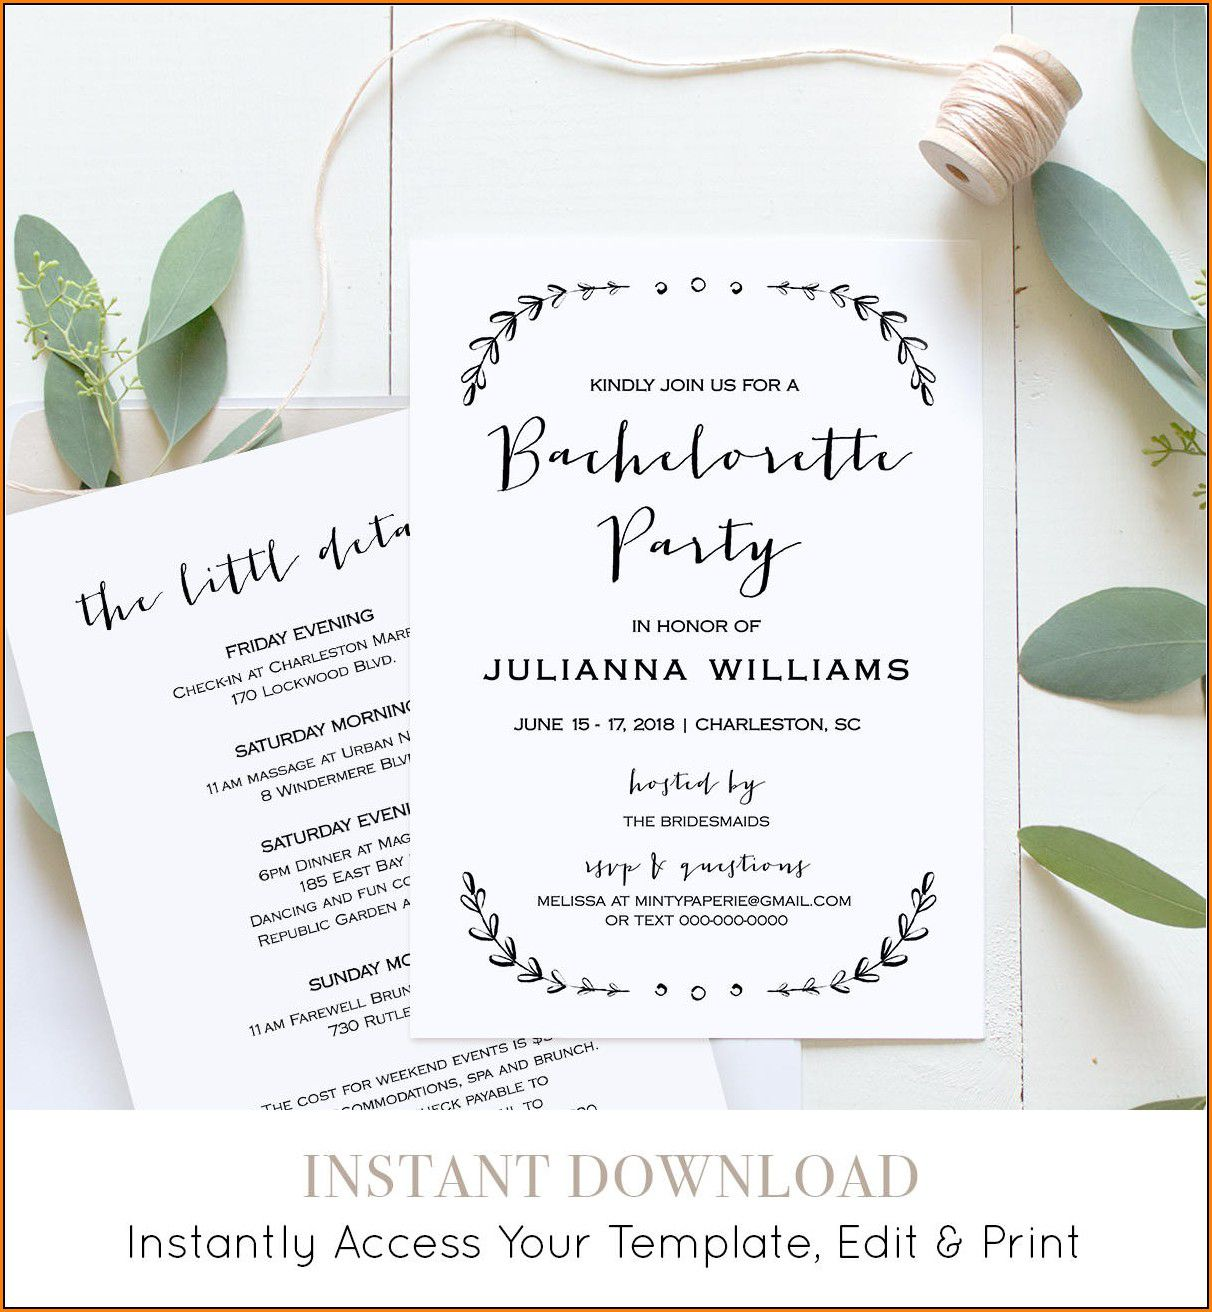 006 Excellent Bachelorette Party Itinerary Template Free Concept  DownloadFull